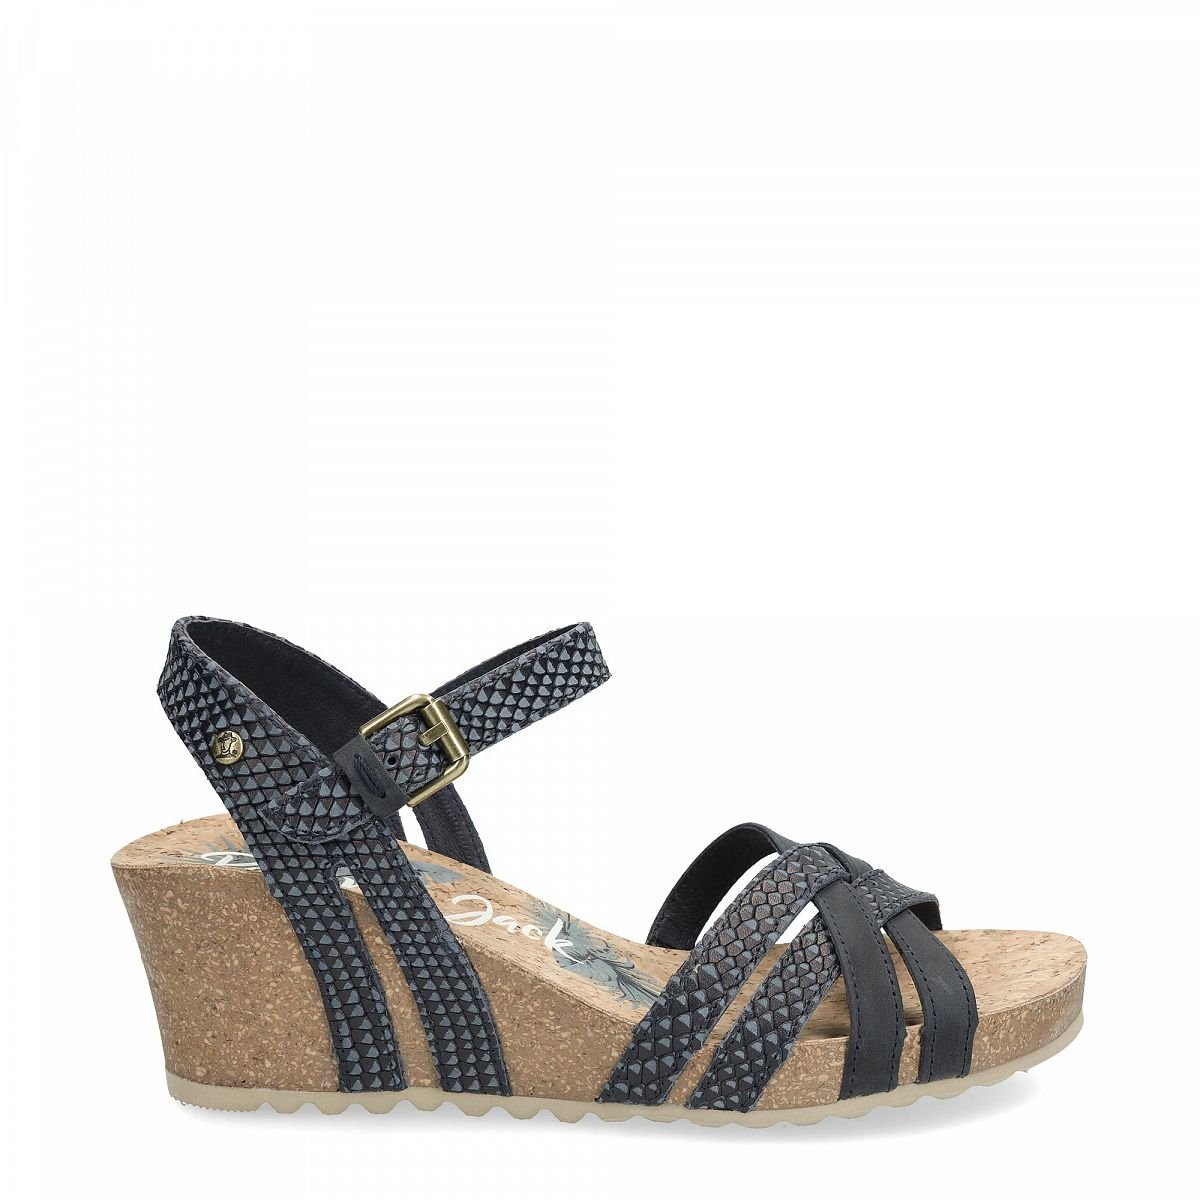 0d641196d2eece Women s sandals VERA SNAKE navy